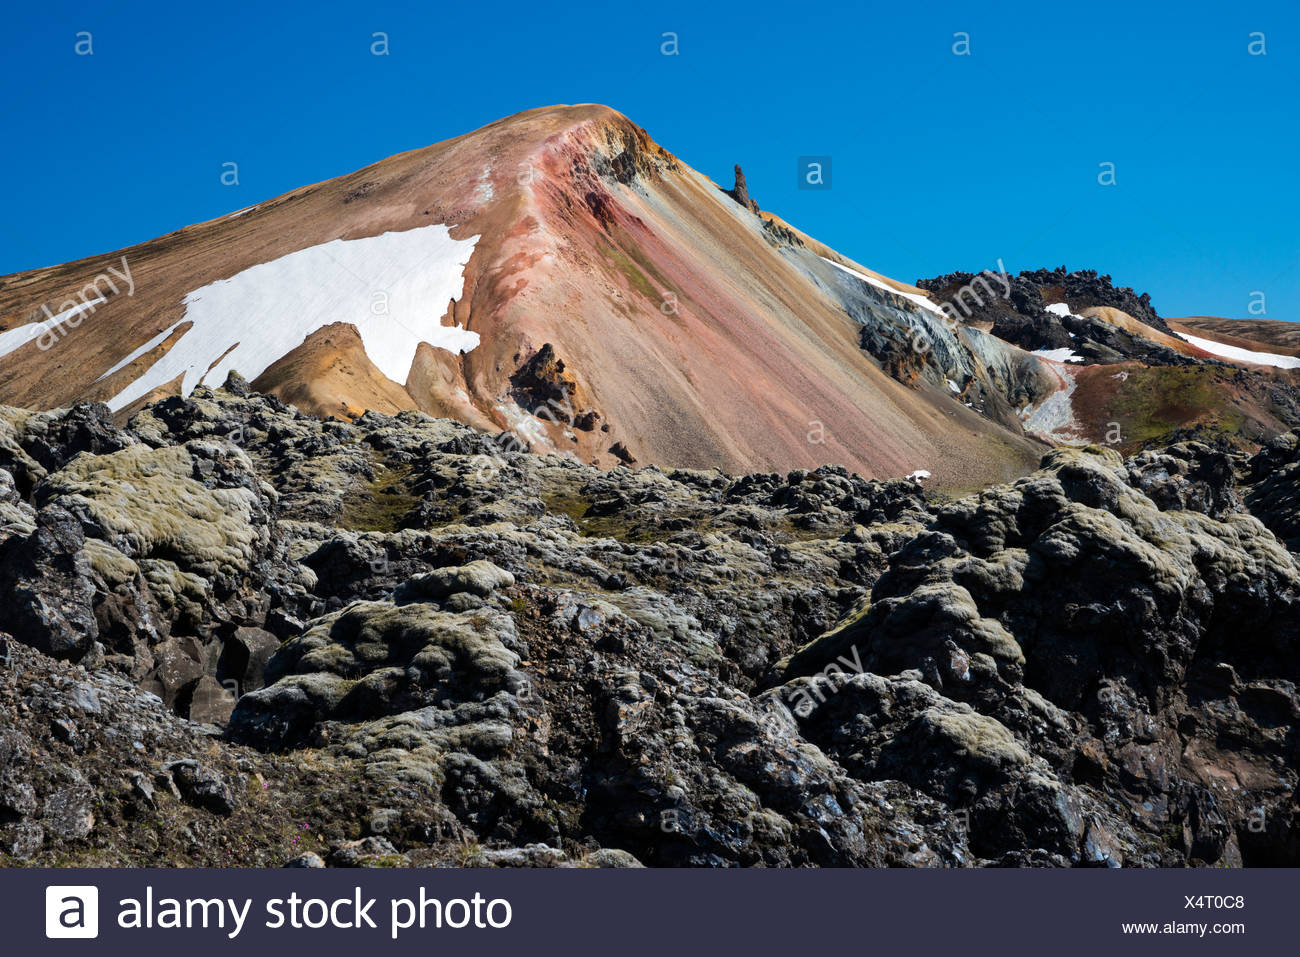 Brennisteinsalda volcano with the Laugahraun lava field, rhyolite mountains, Landmannalaugar, Fjallabak Nature Reserve - Stock Image